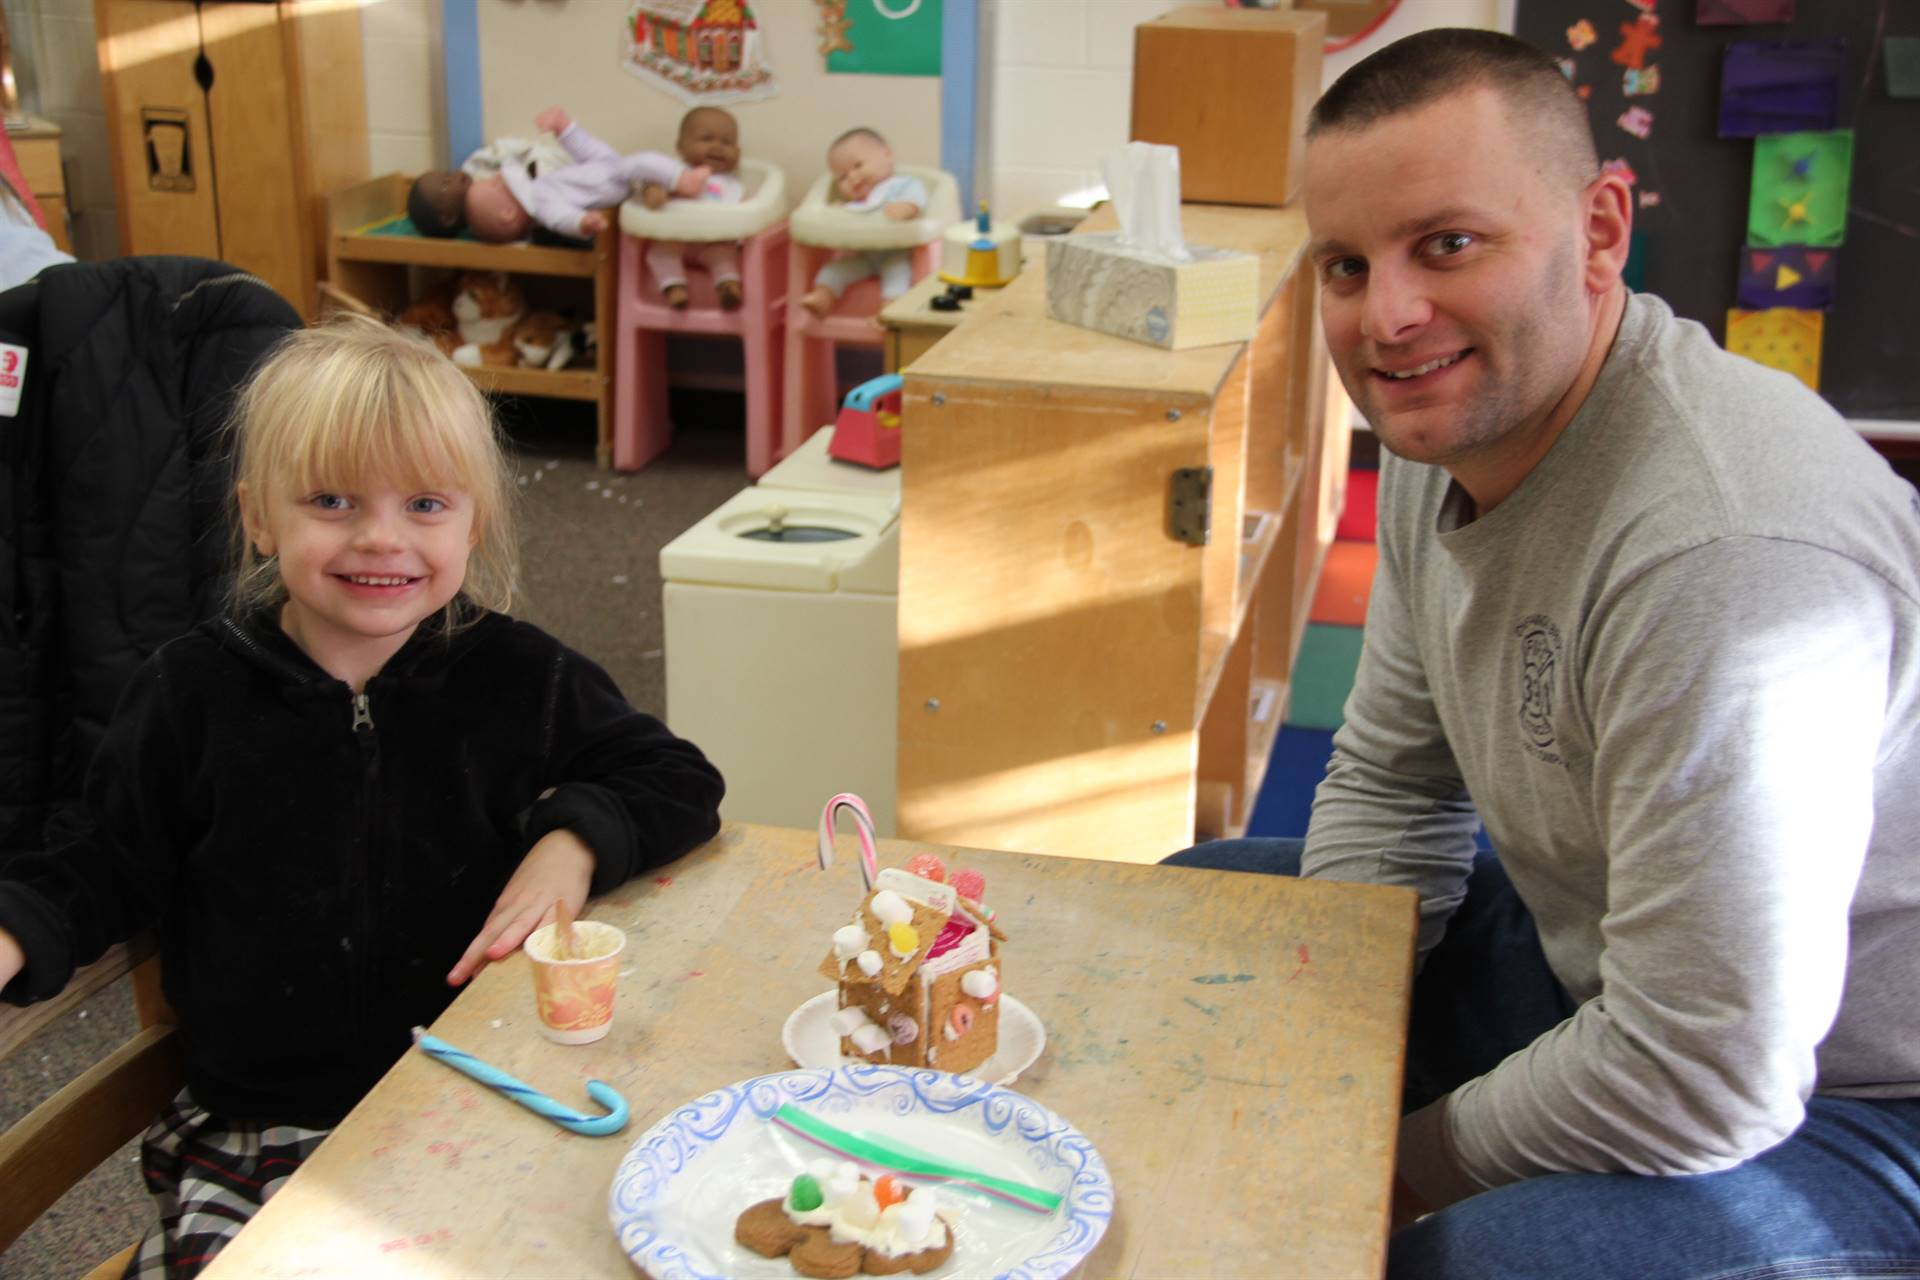 man and girl smiling next to gingerbread house